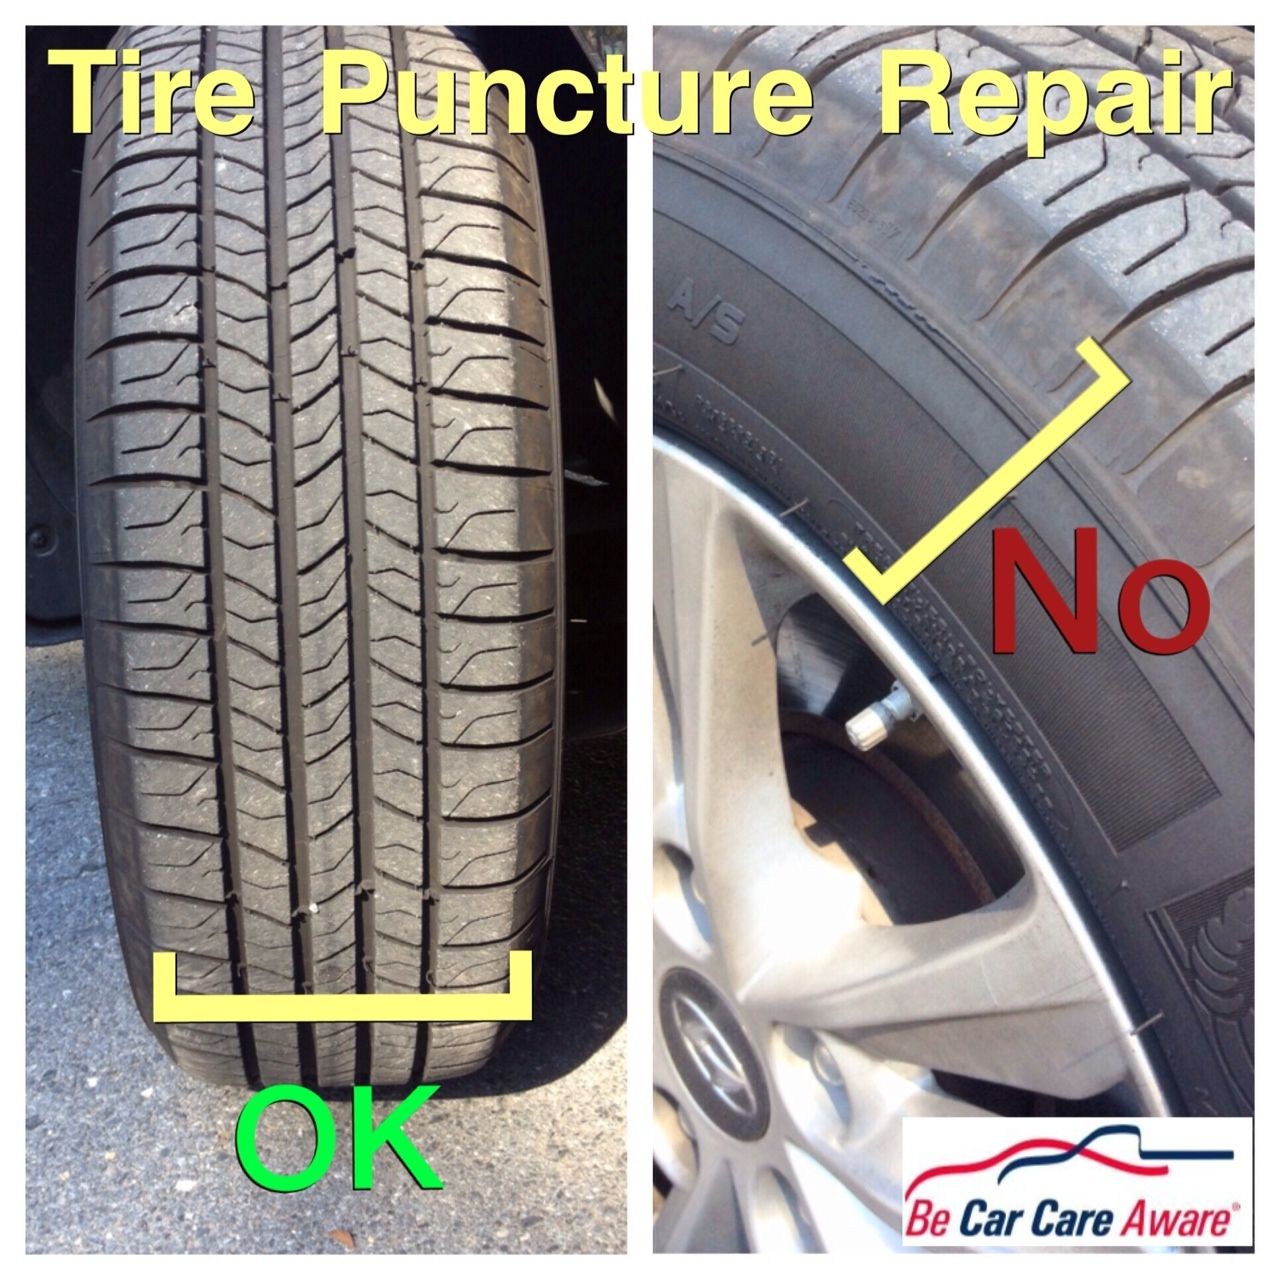 Tire Punctures Can Only Be Repaired In The Tread Area And Should Not Be Over 1 4 In Diameter Car Care Repair Car Care Tips